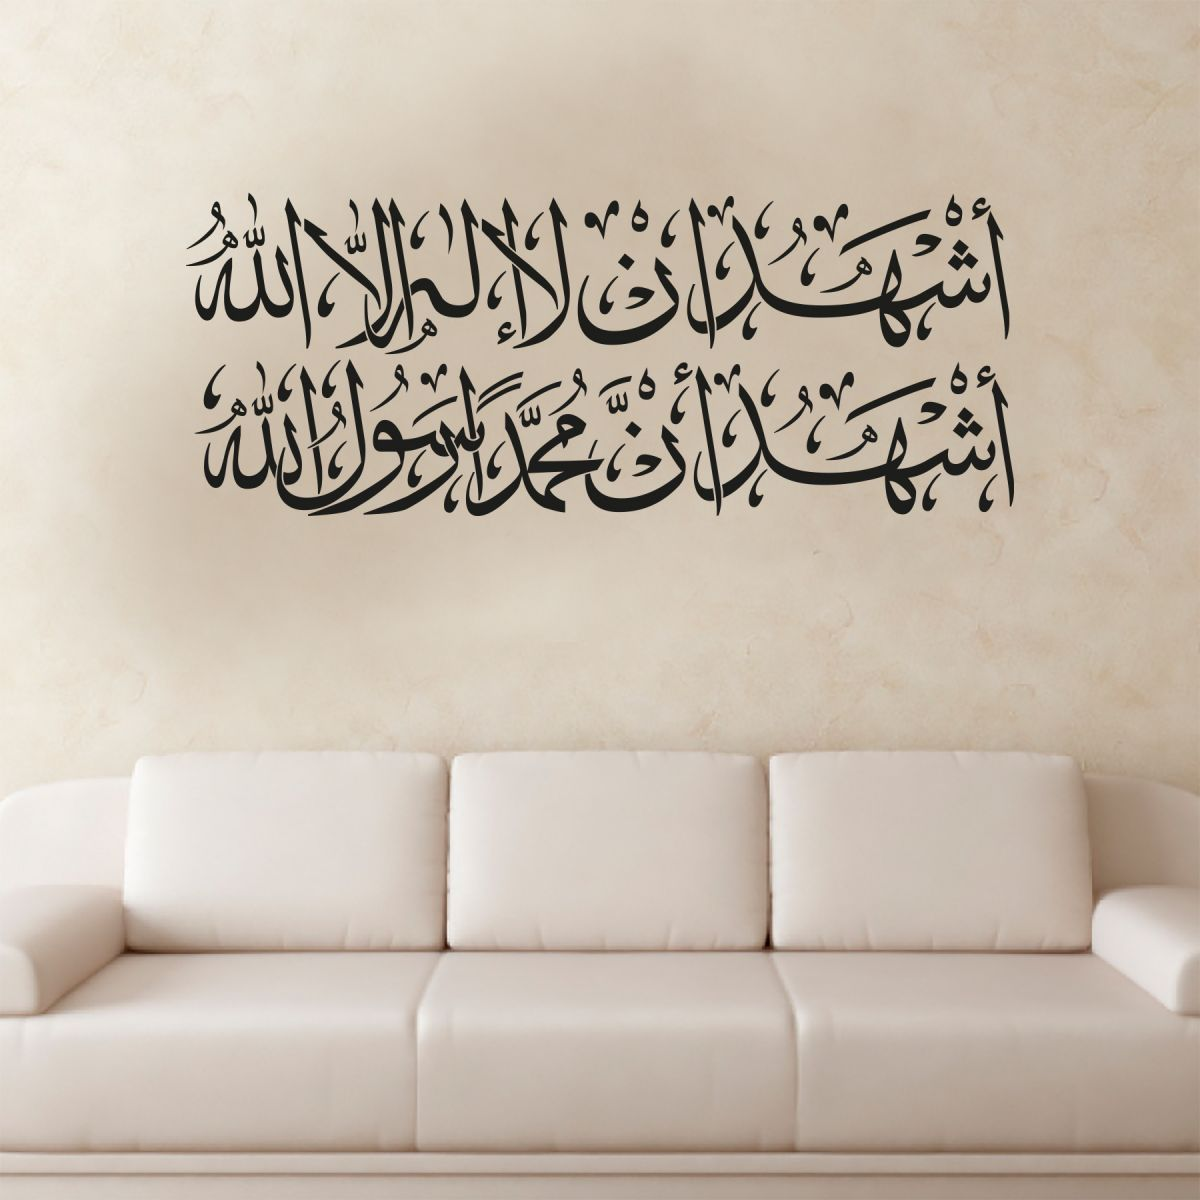 shahada glaubensbekenntniss wandtattoo arabische schrift ebay. Black Bedroom Furniture Sets. Home Design Ideas